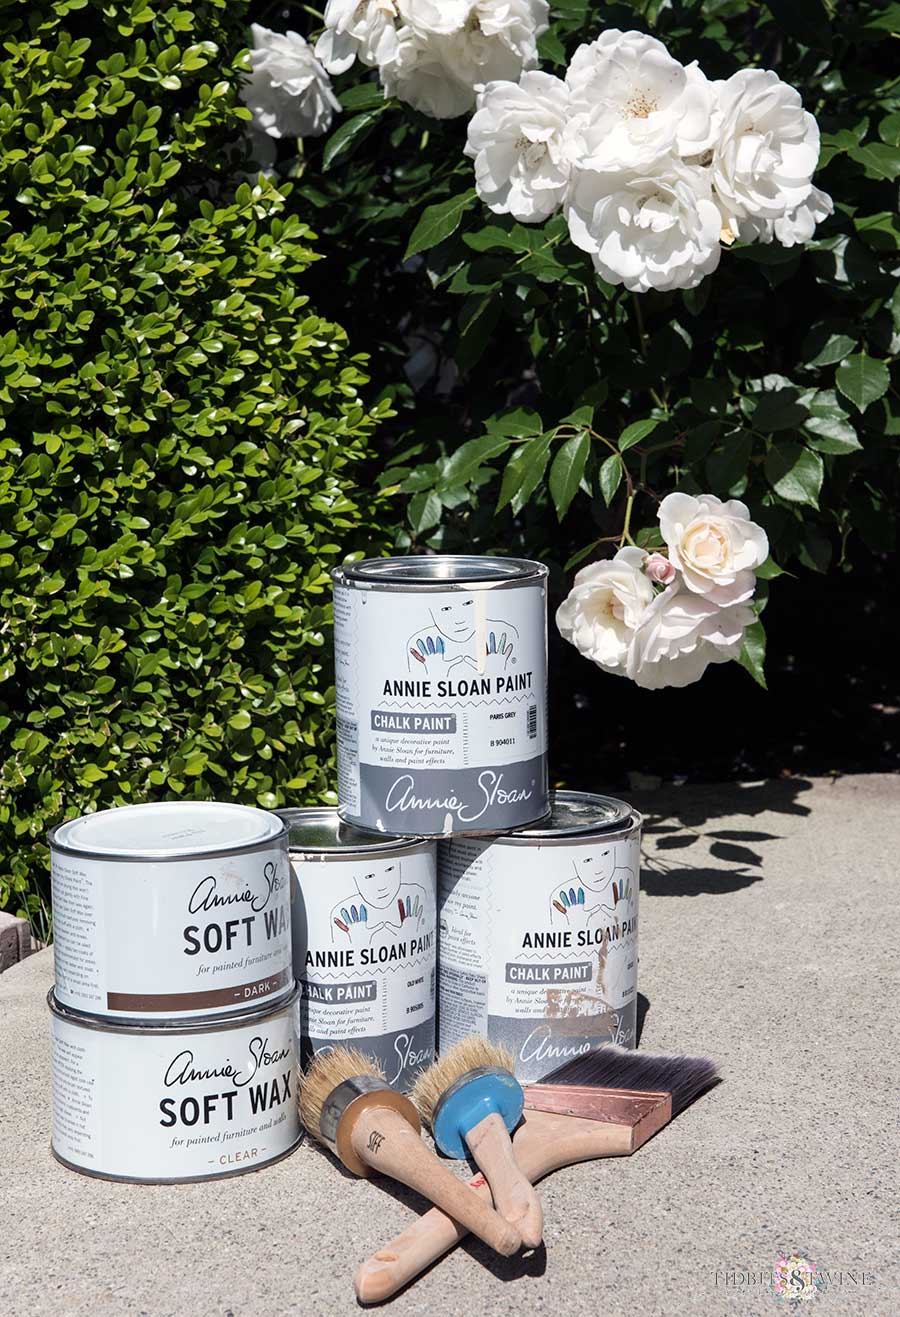 Annie Sloan chalk paint supplies to create a Restoration Hardware wood look using chalk paint.